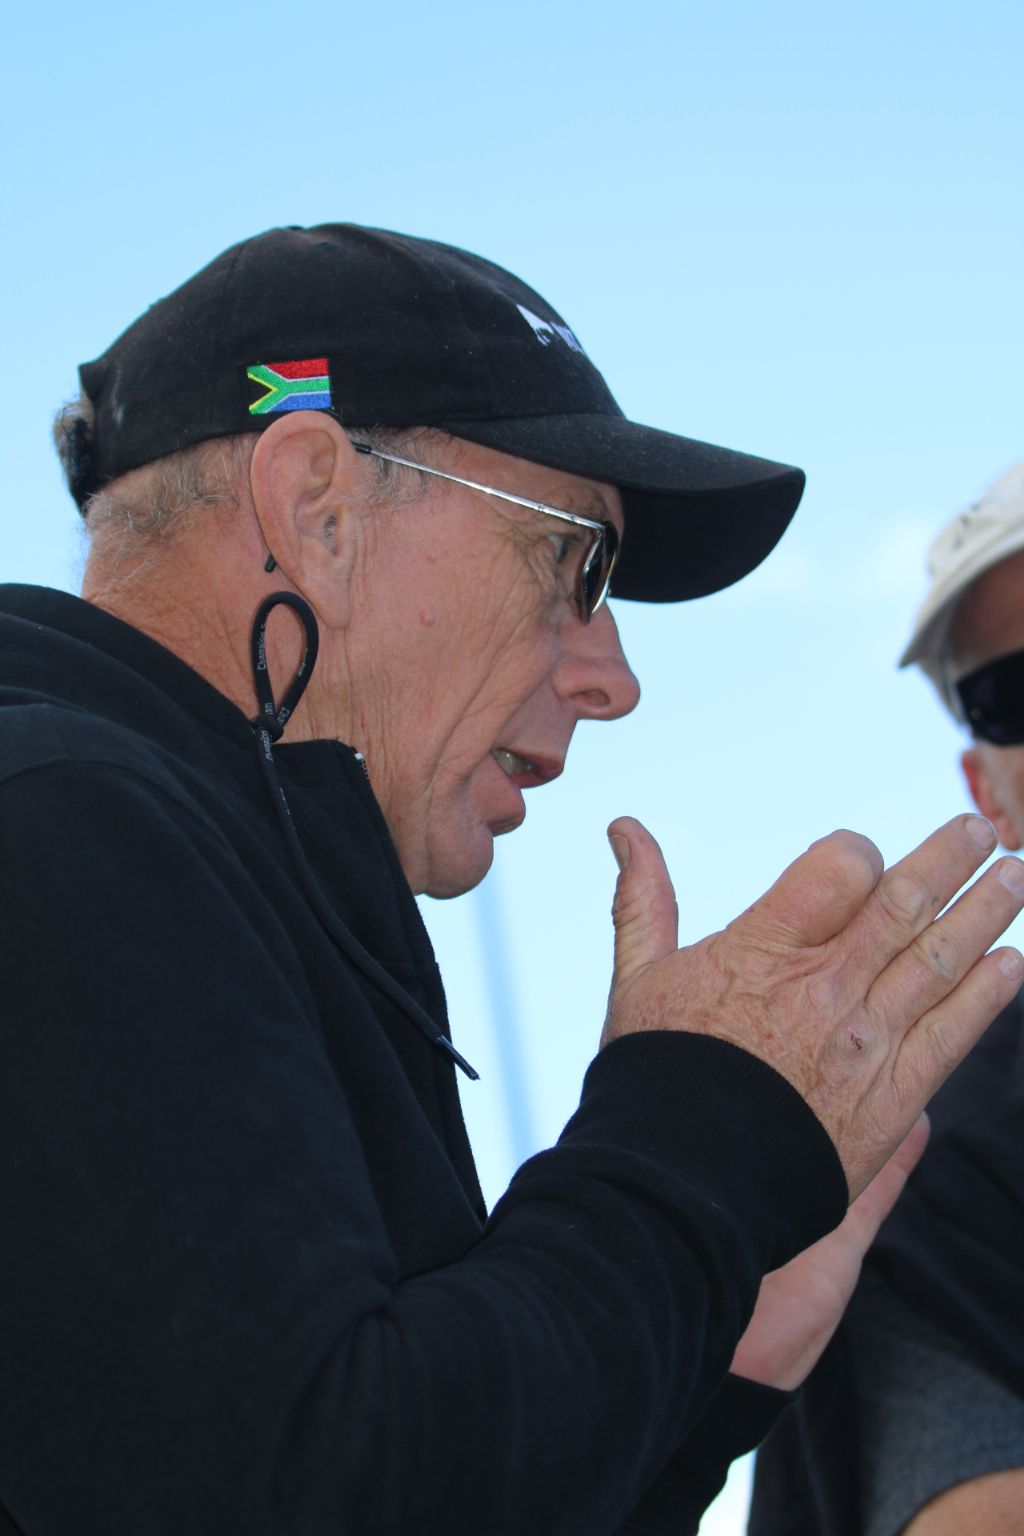 Gervase Explaining a Point @Cycle for Life